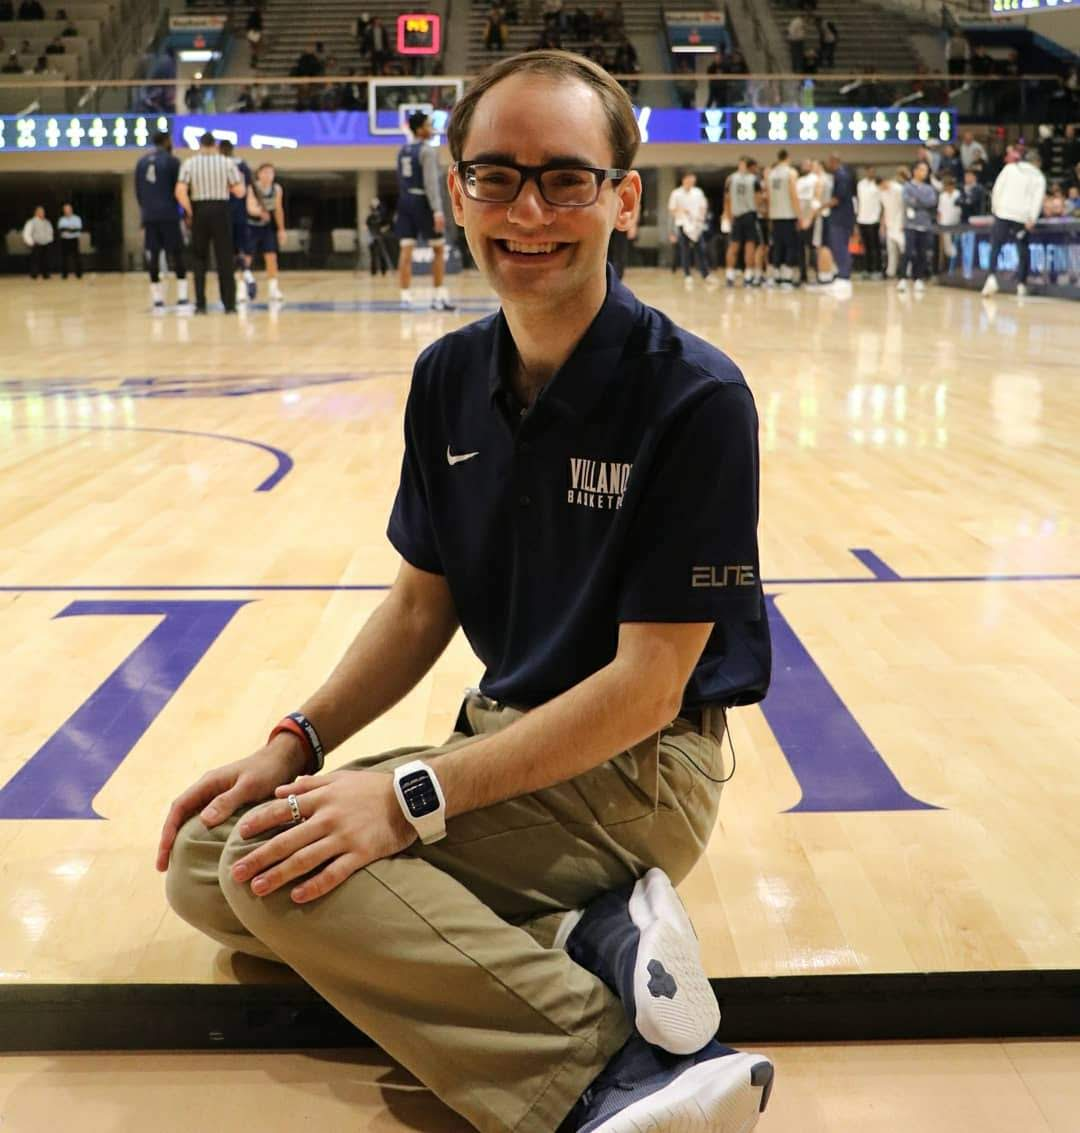 Andrew McKeough sits on the court of the Finneran Pavilion at Villanova University in October of 2018